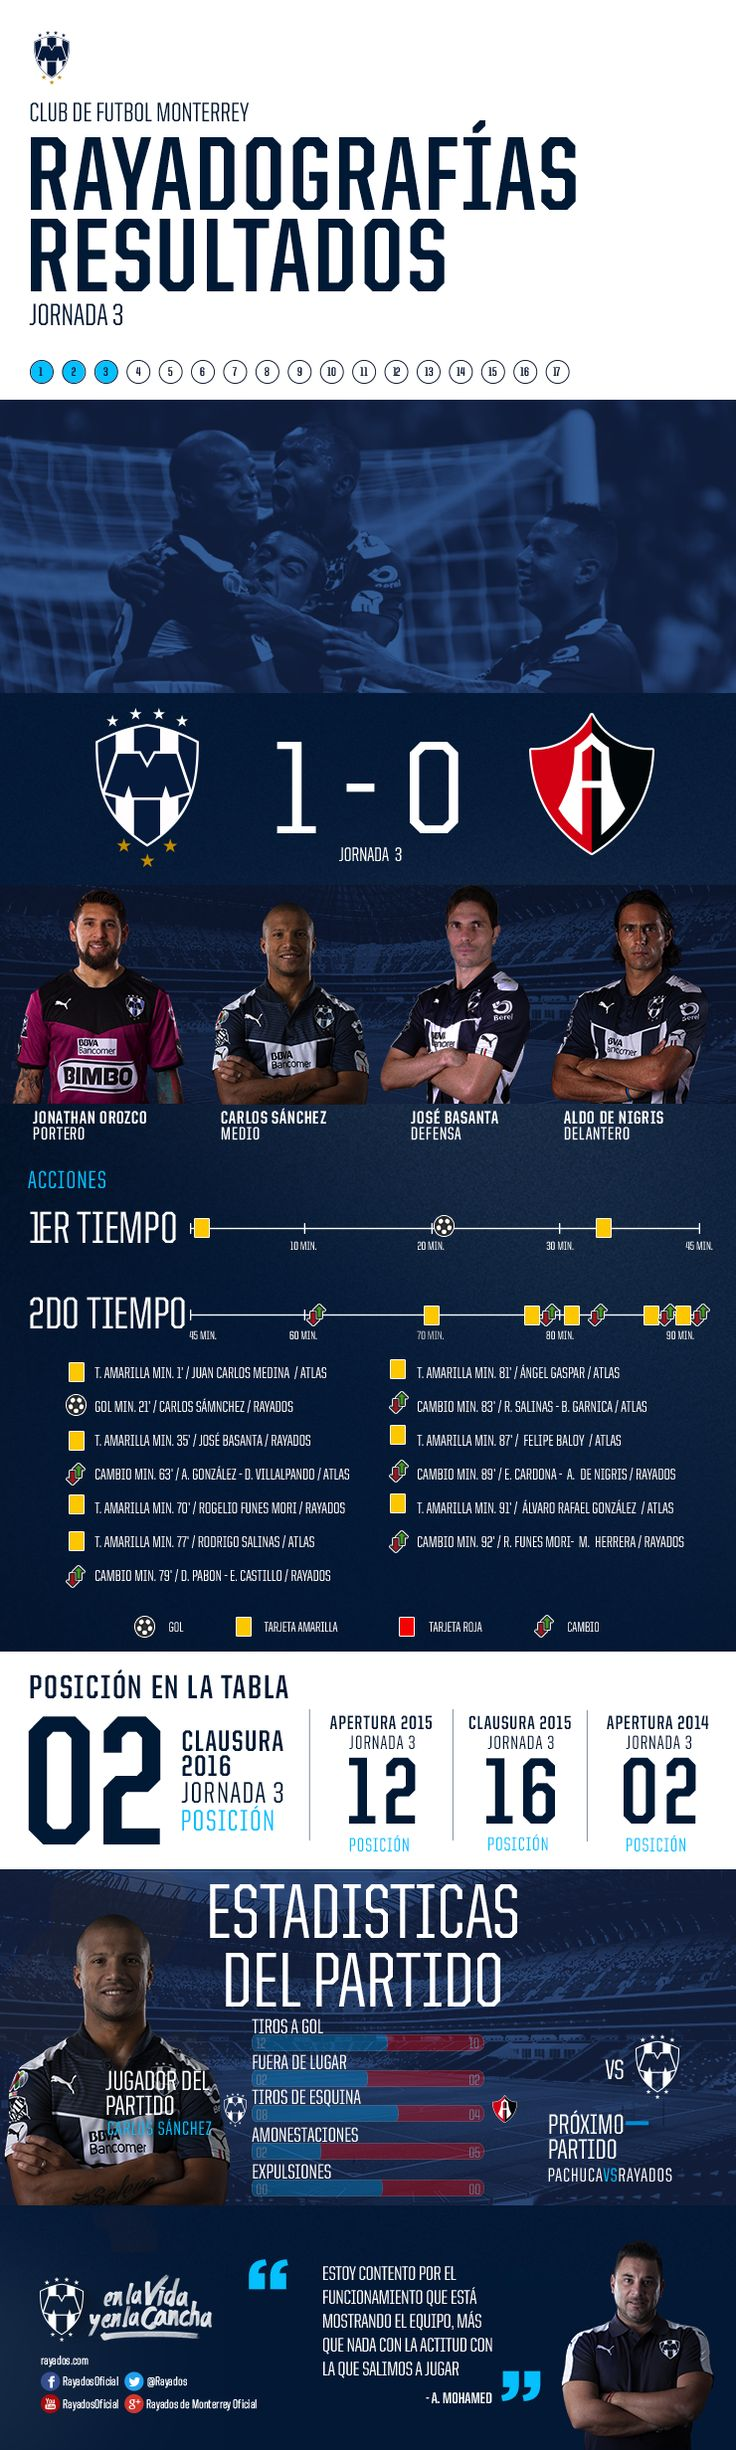 Rayadografía - Rayados vs. Atlas (Post)